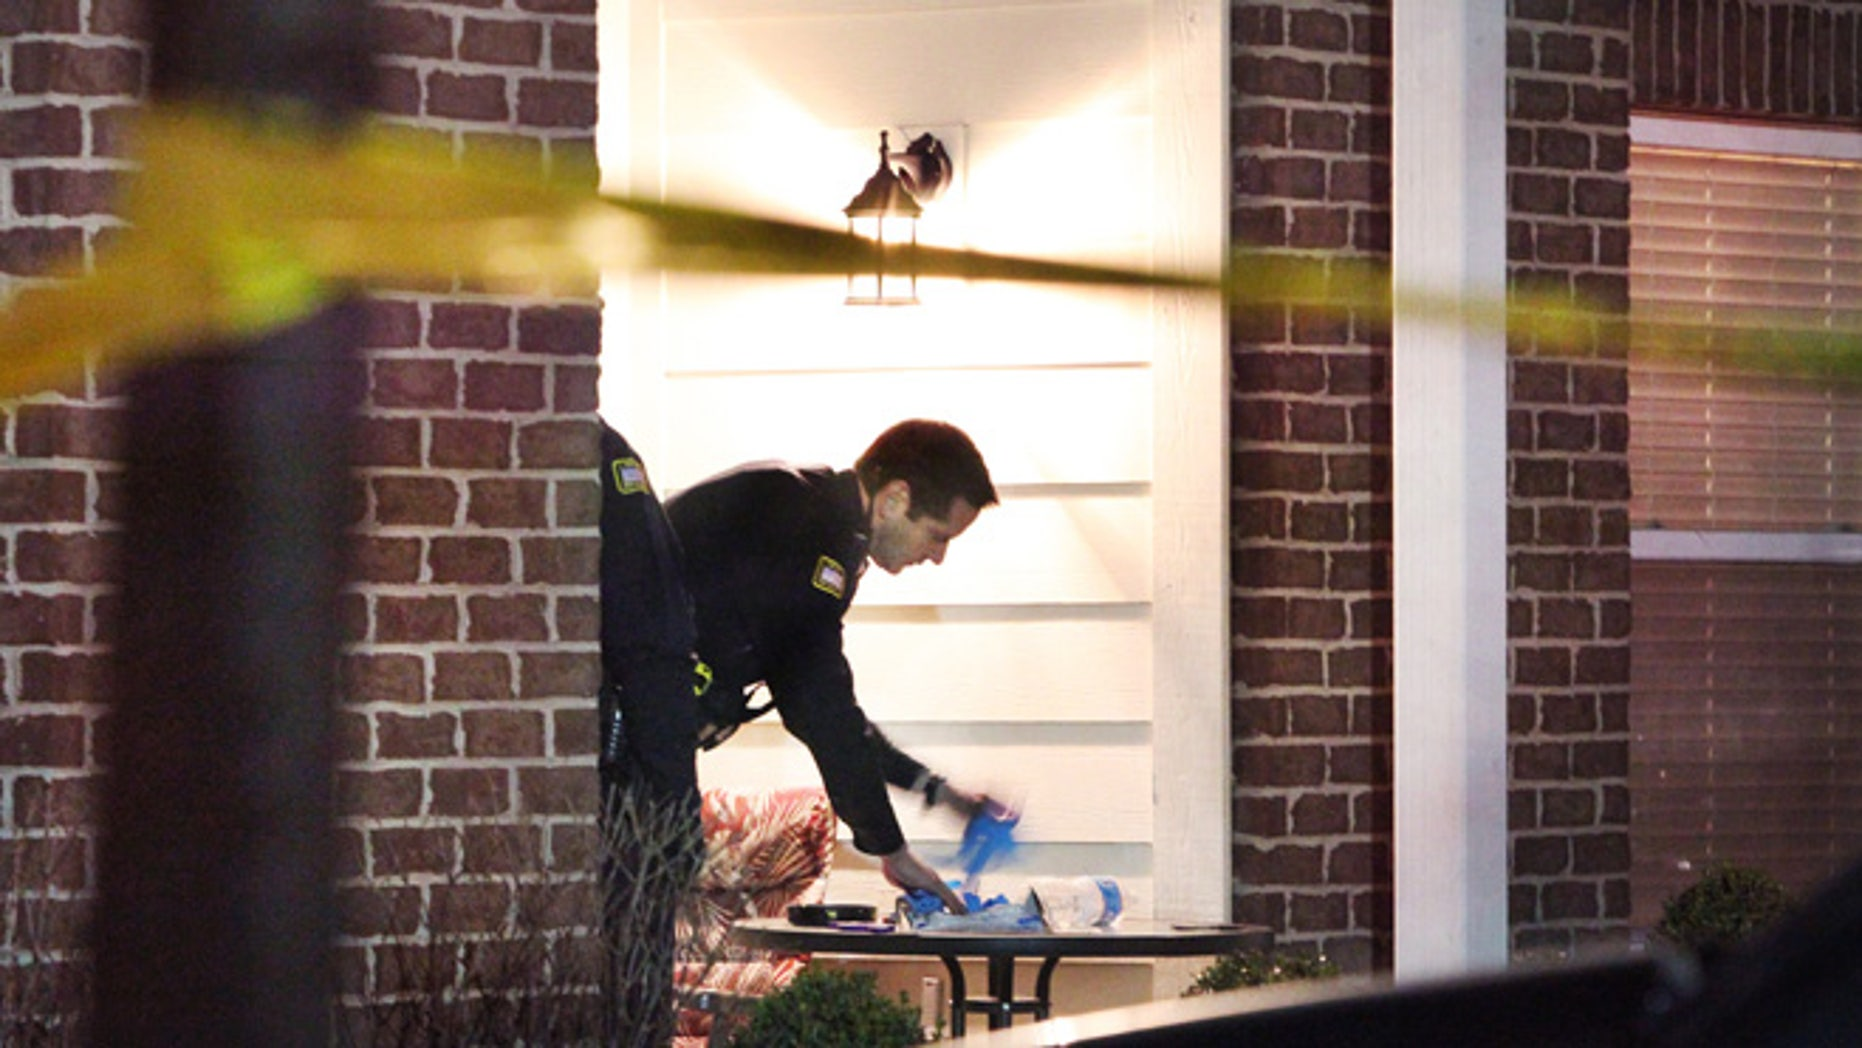 Jan. 9, 2013: A Noblesville policeman sets out crime scene gloves on a patio table, the scene of a stabbing in Noblesville, Ind.